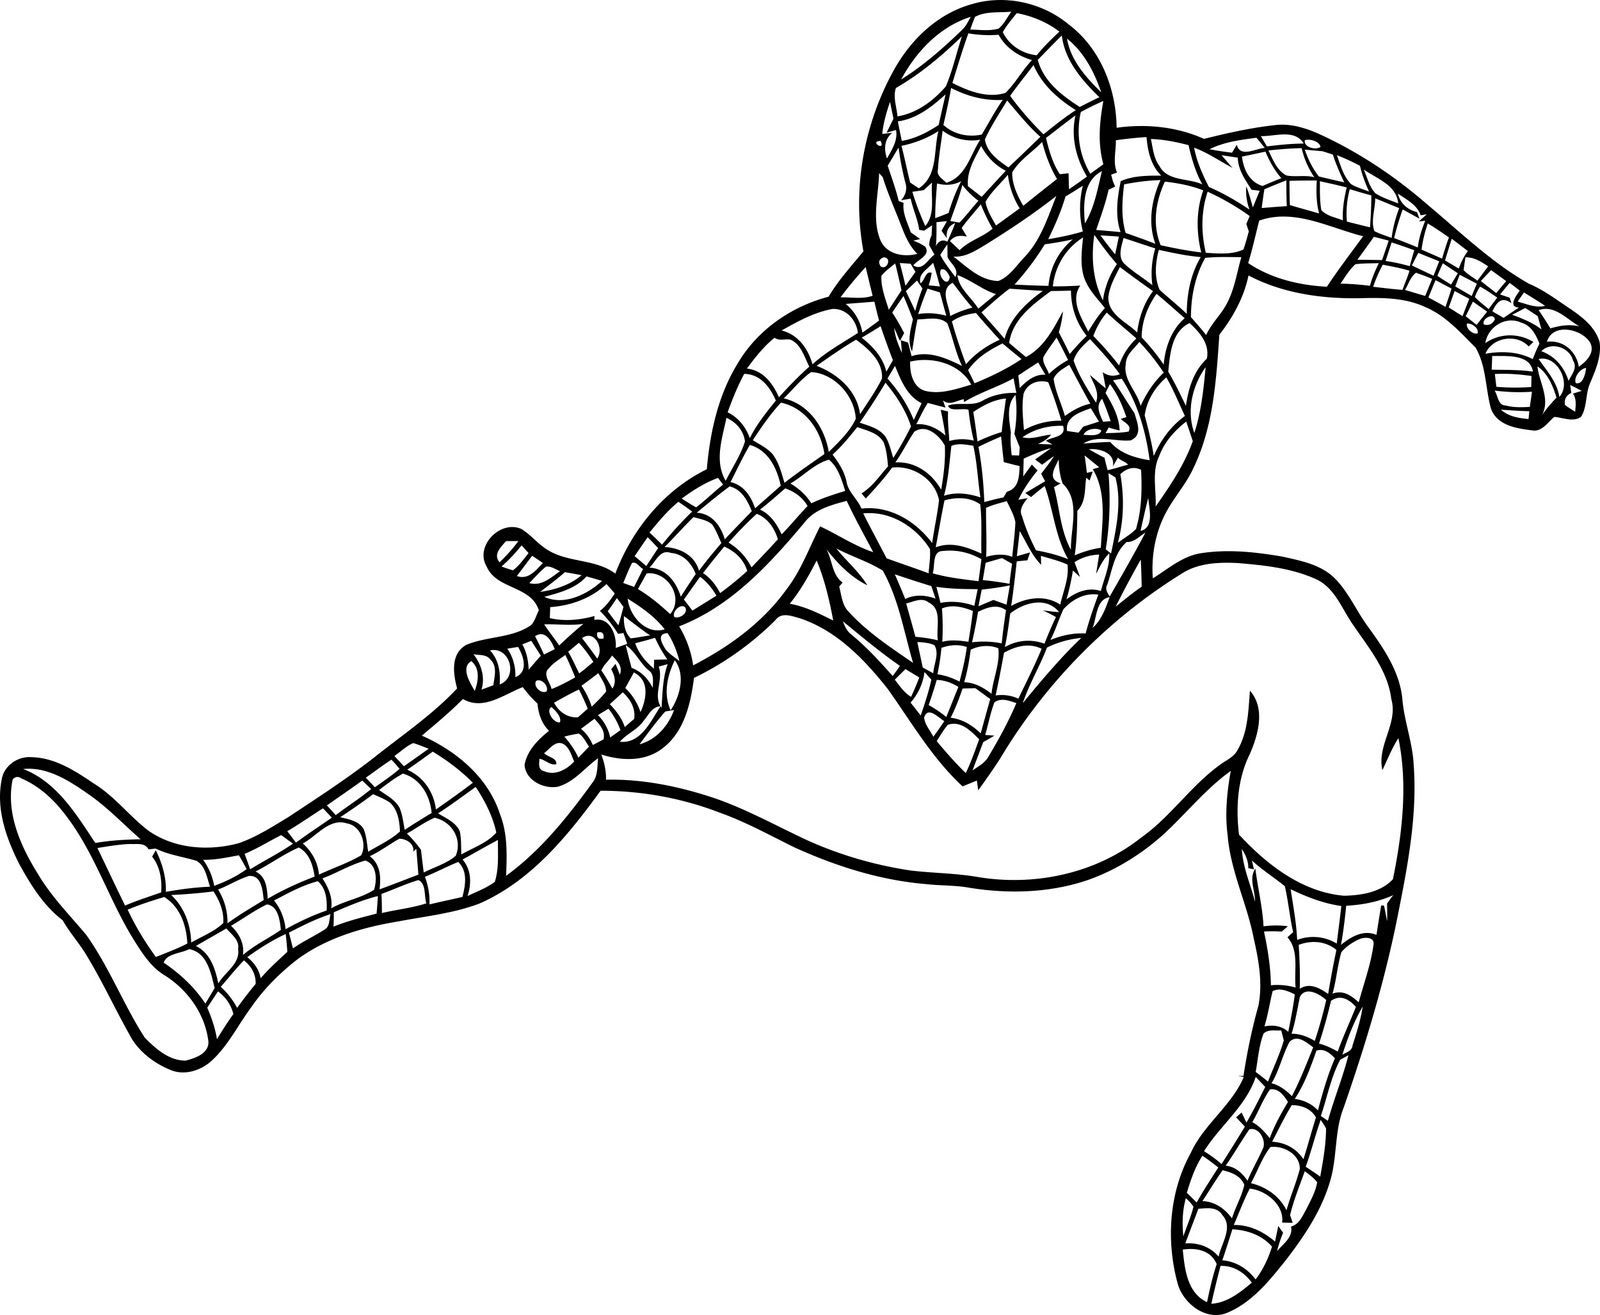 Printable Spiderman Coloring Pages Superhero Coloring Pages Superhero Coloring Spiderman Coloring